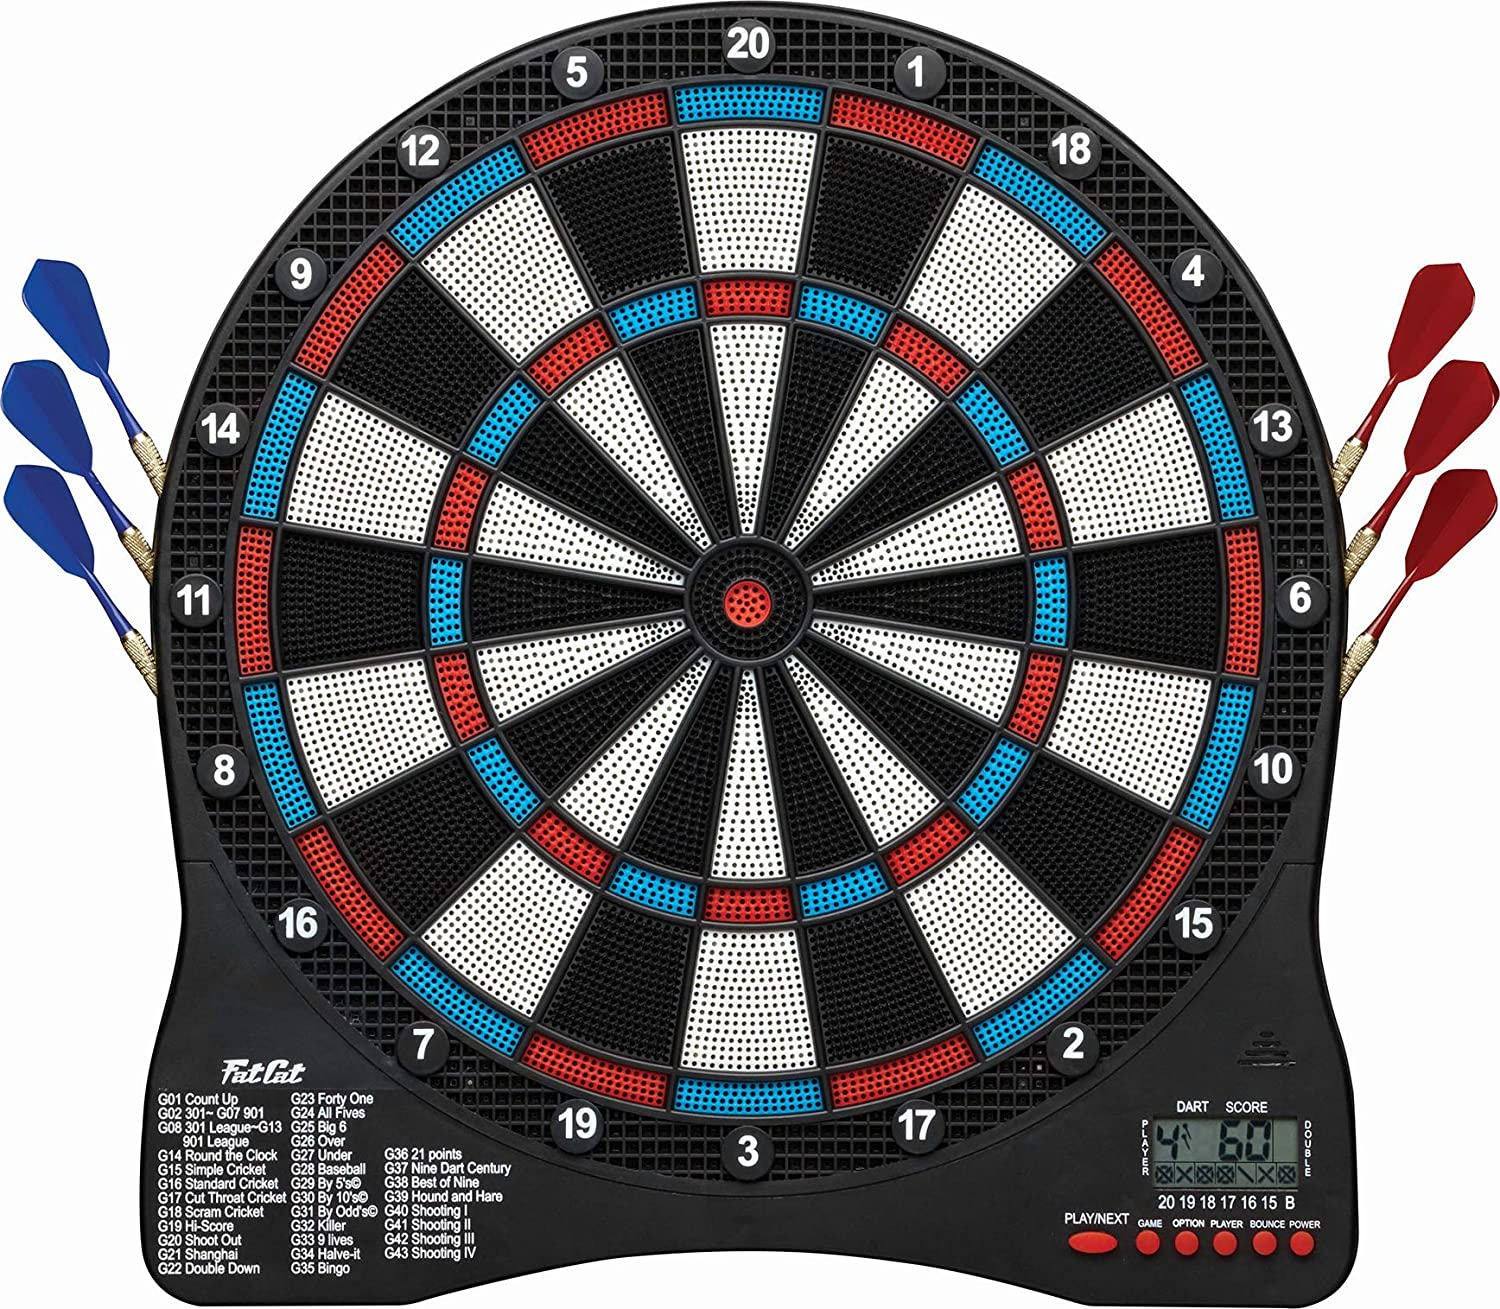 Fat Cat Sirius 13 5 Electronic Dartboard Compact Size For Easy Install Backlit Cricket Scoreboard Easy To Use Button Interface Optional Double